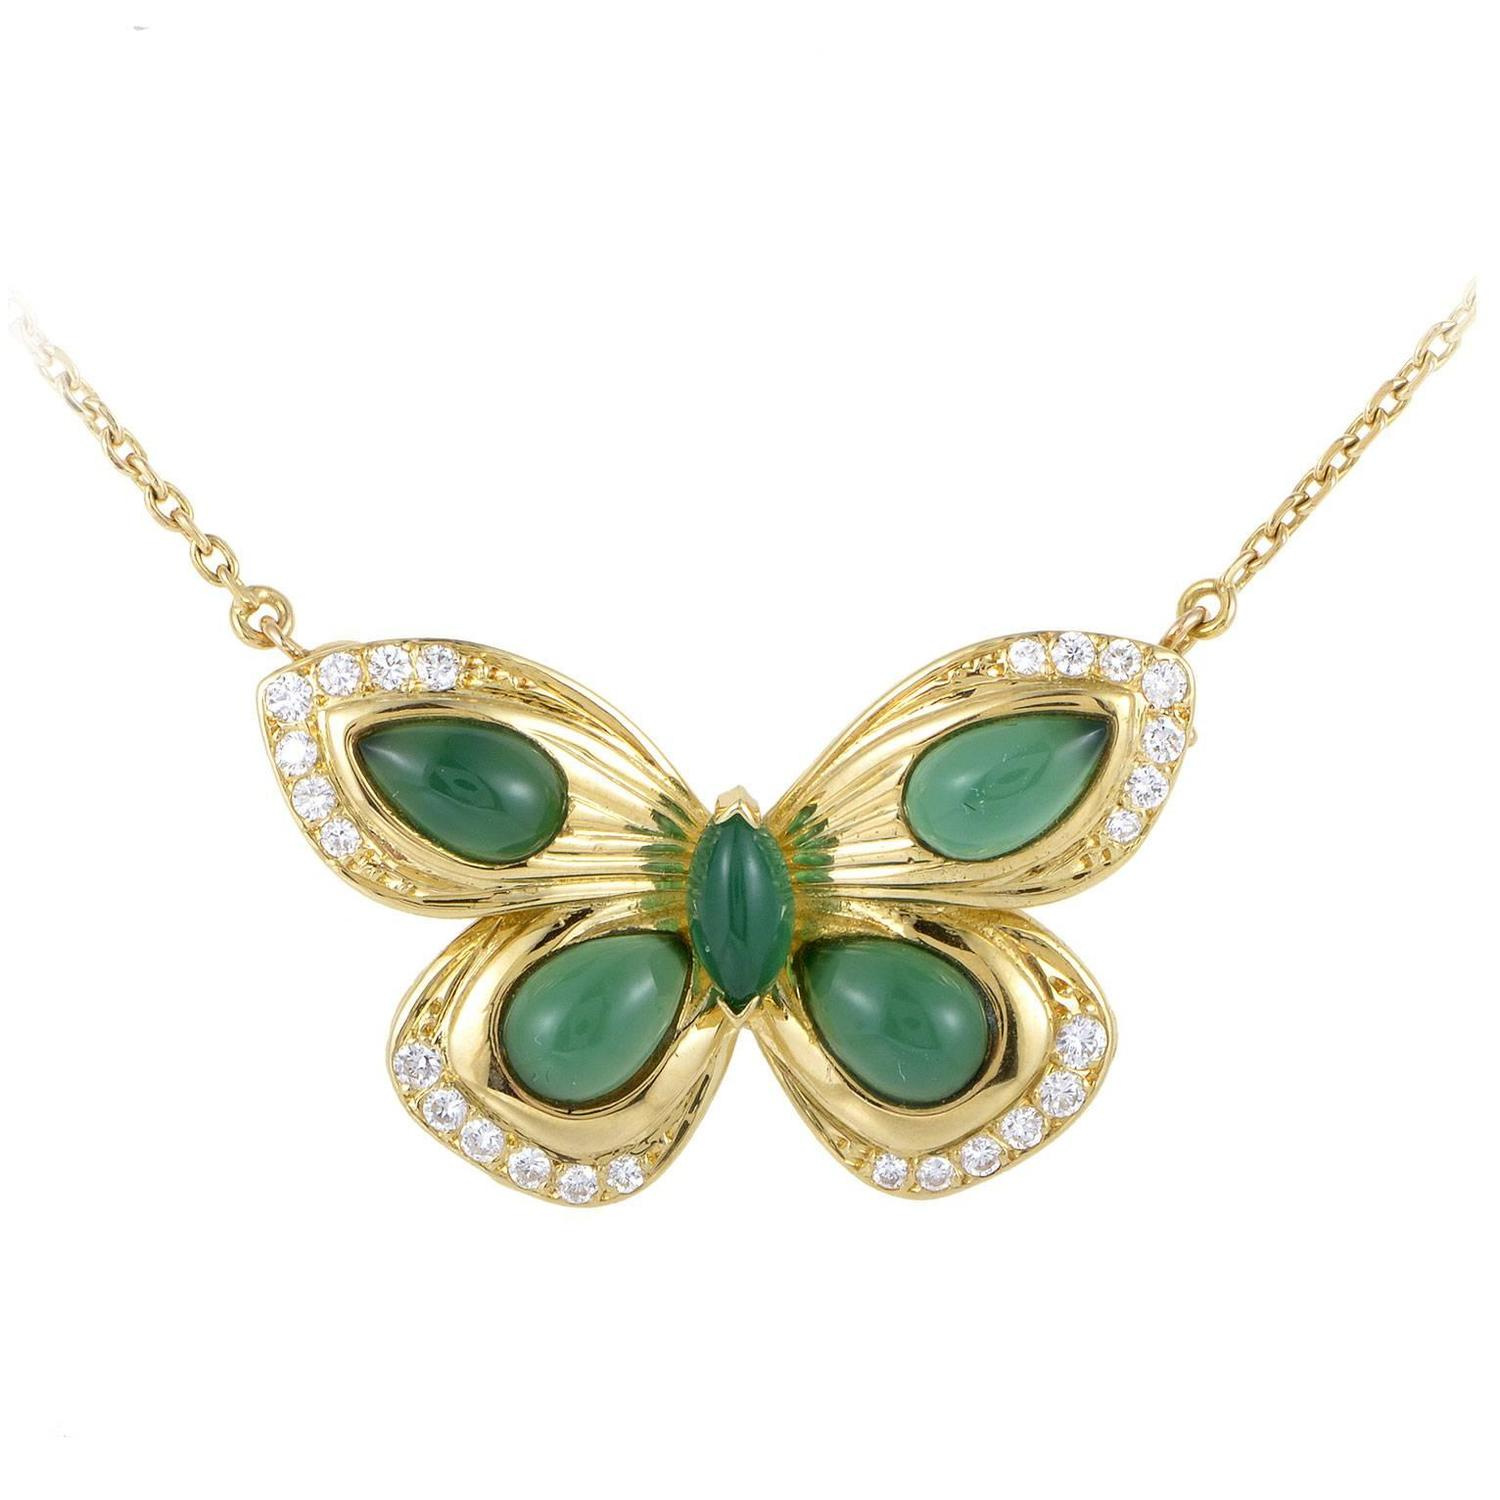 Van cleef and arpels yellow gold diamond and jade butterfly pendant van cleef and arpels yellow gold diamond and jade butterfly pendant necklace at 1stdibs aloadofball Image collections